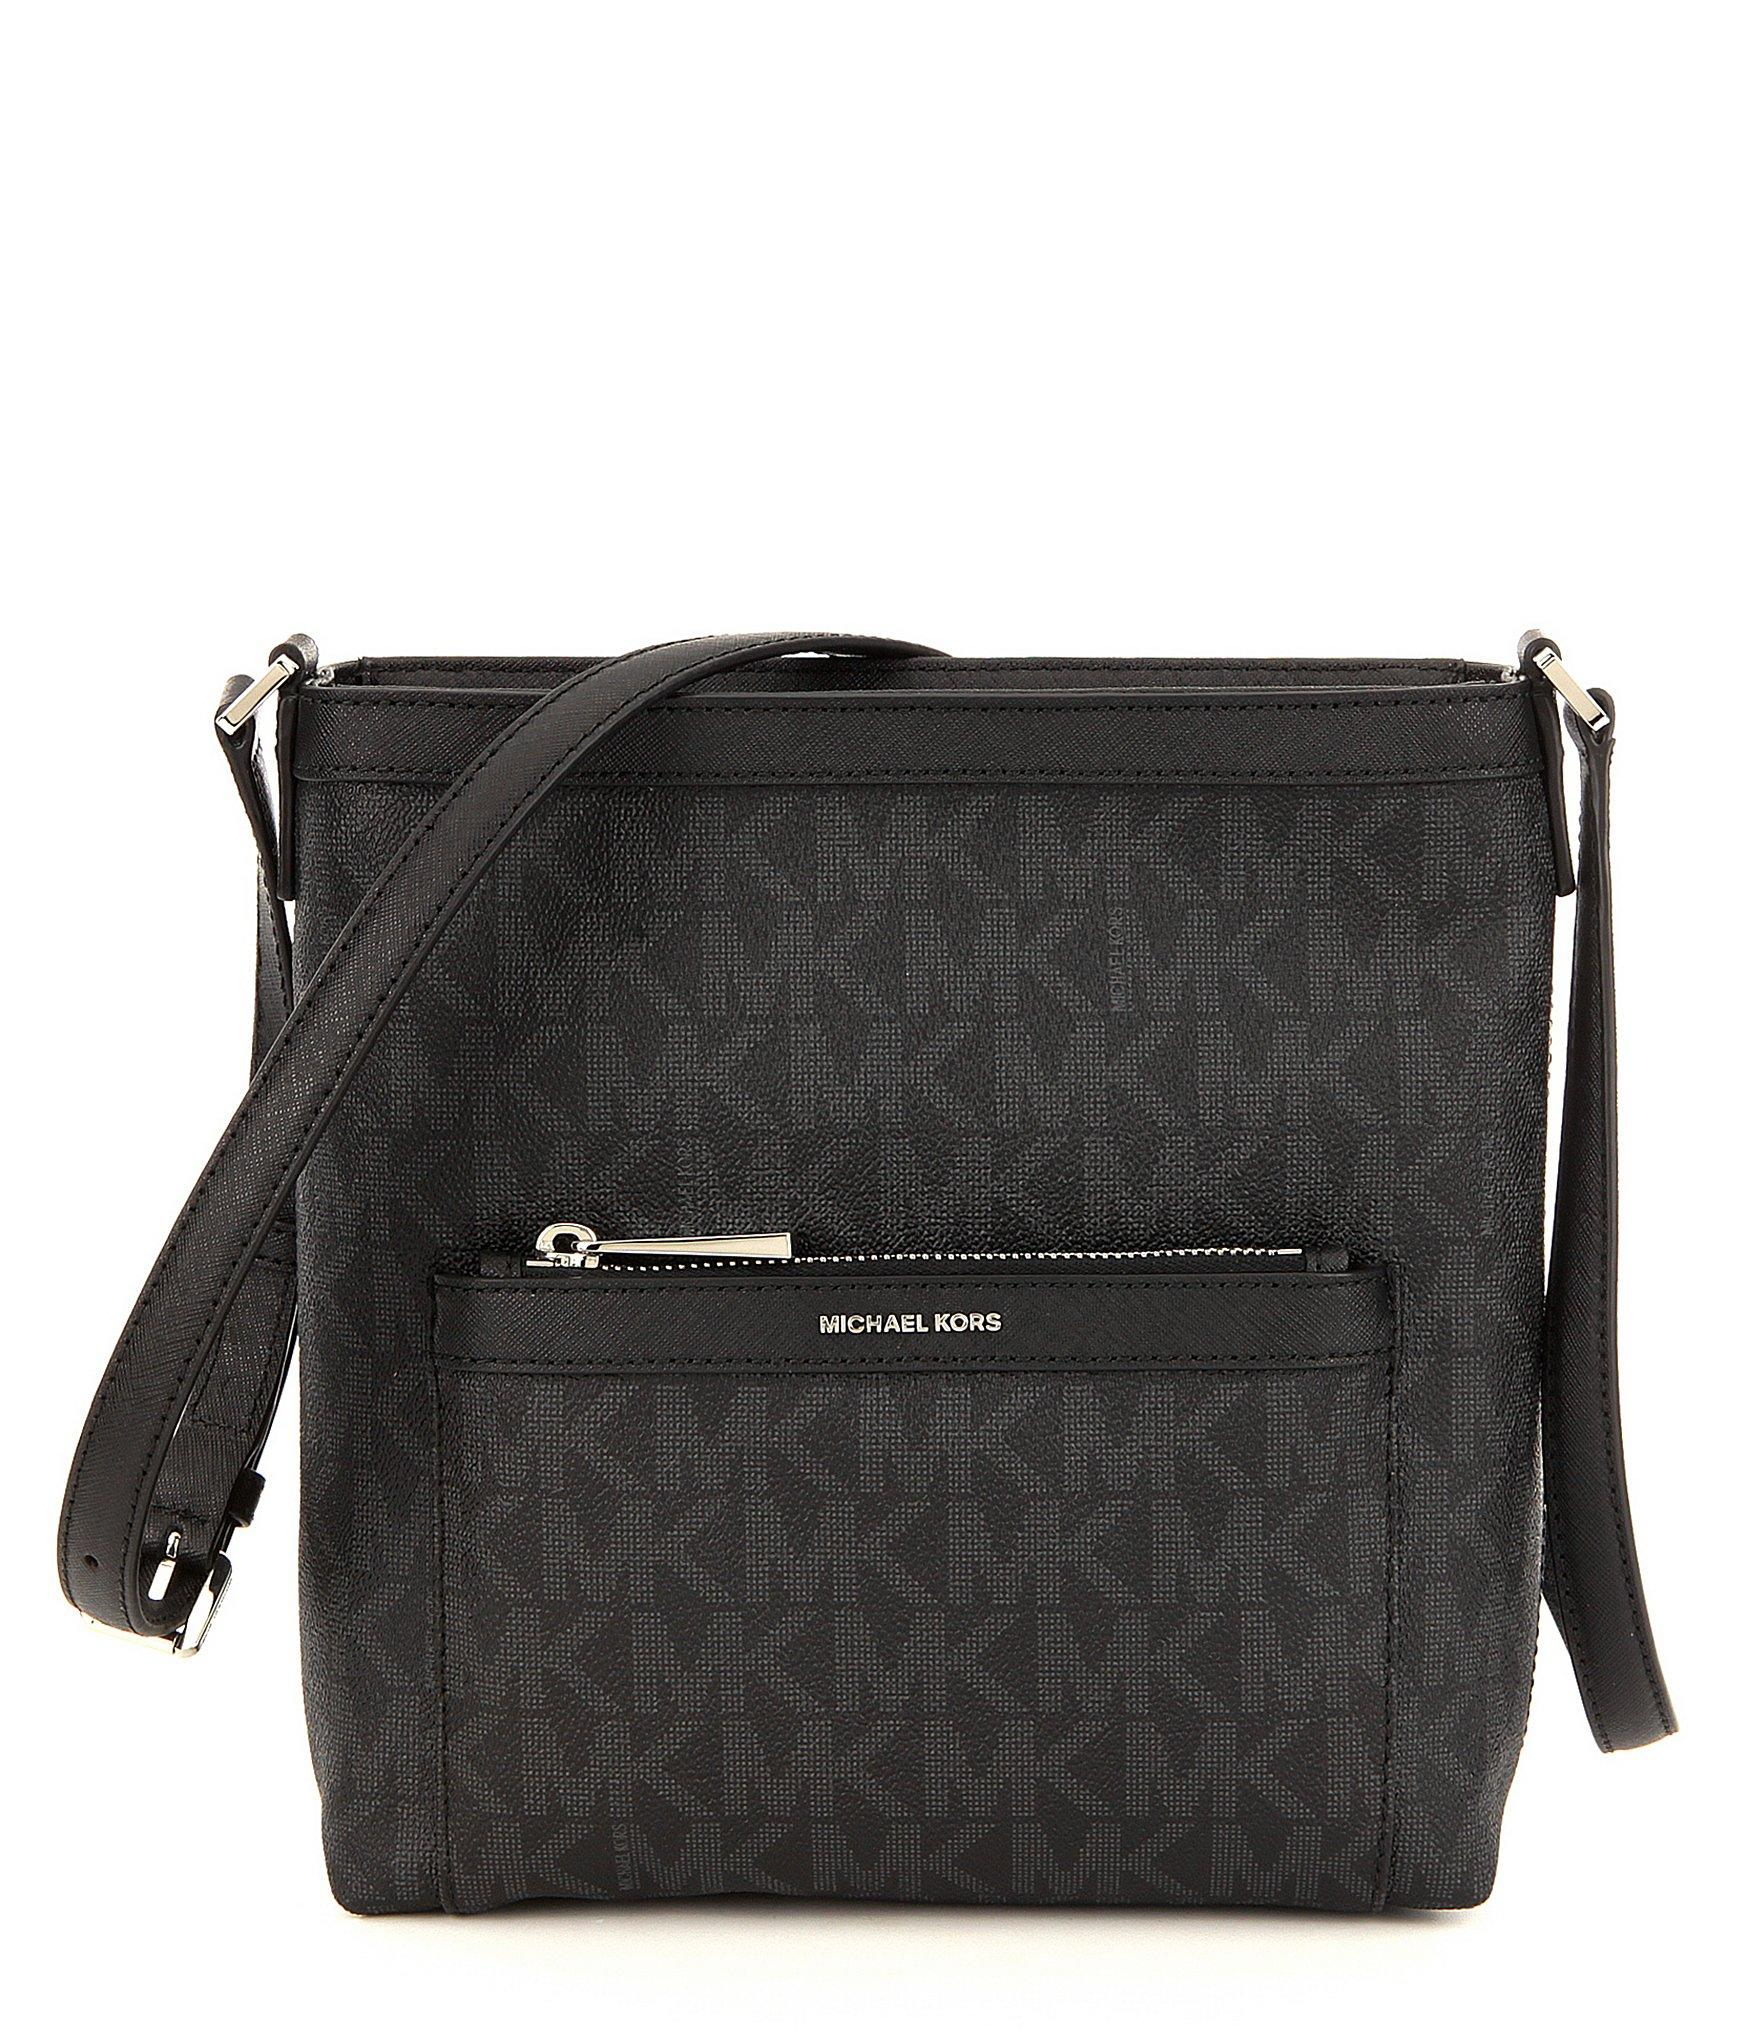 26824fd951 ... top quality lyst michael michael kors morgan signature medium messenger  bag in fda16 18292